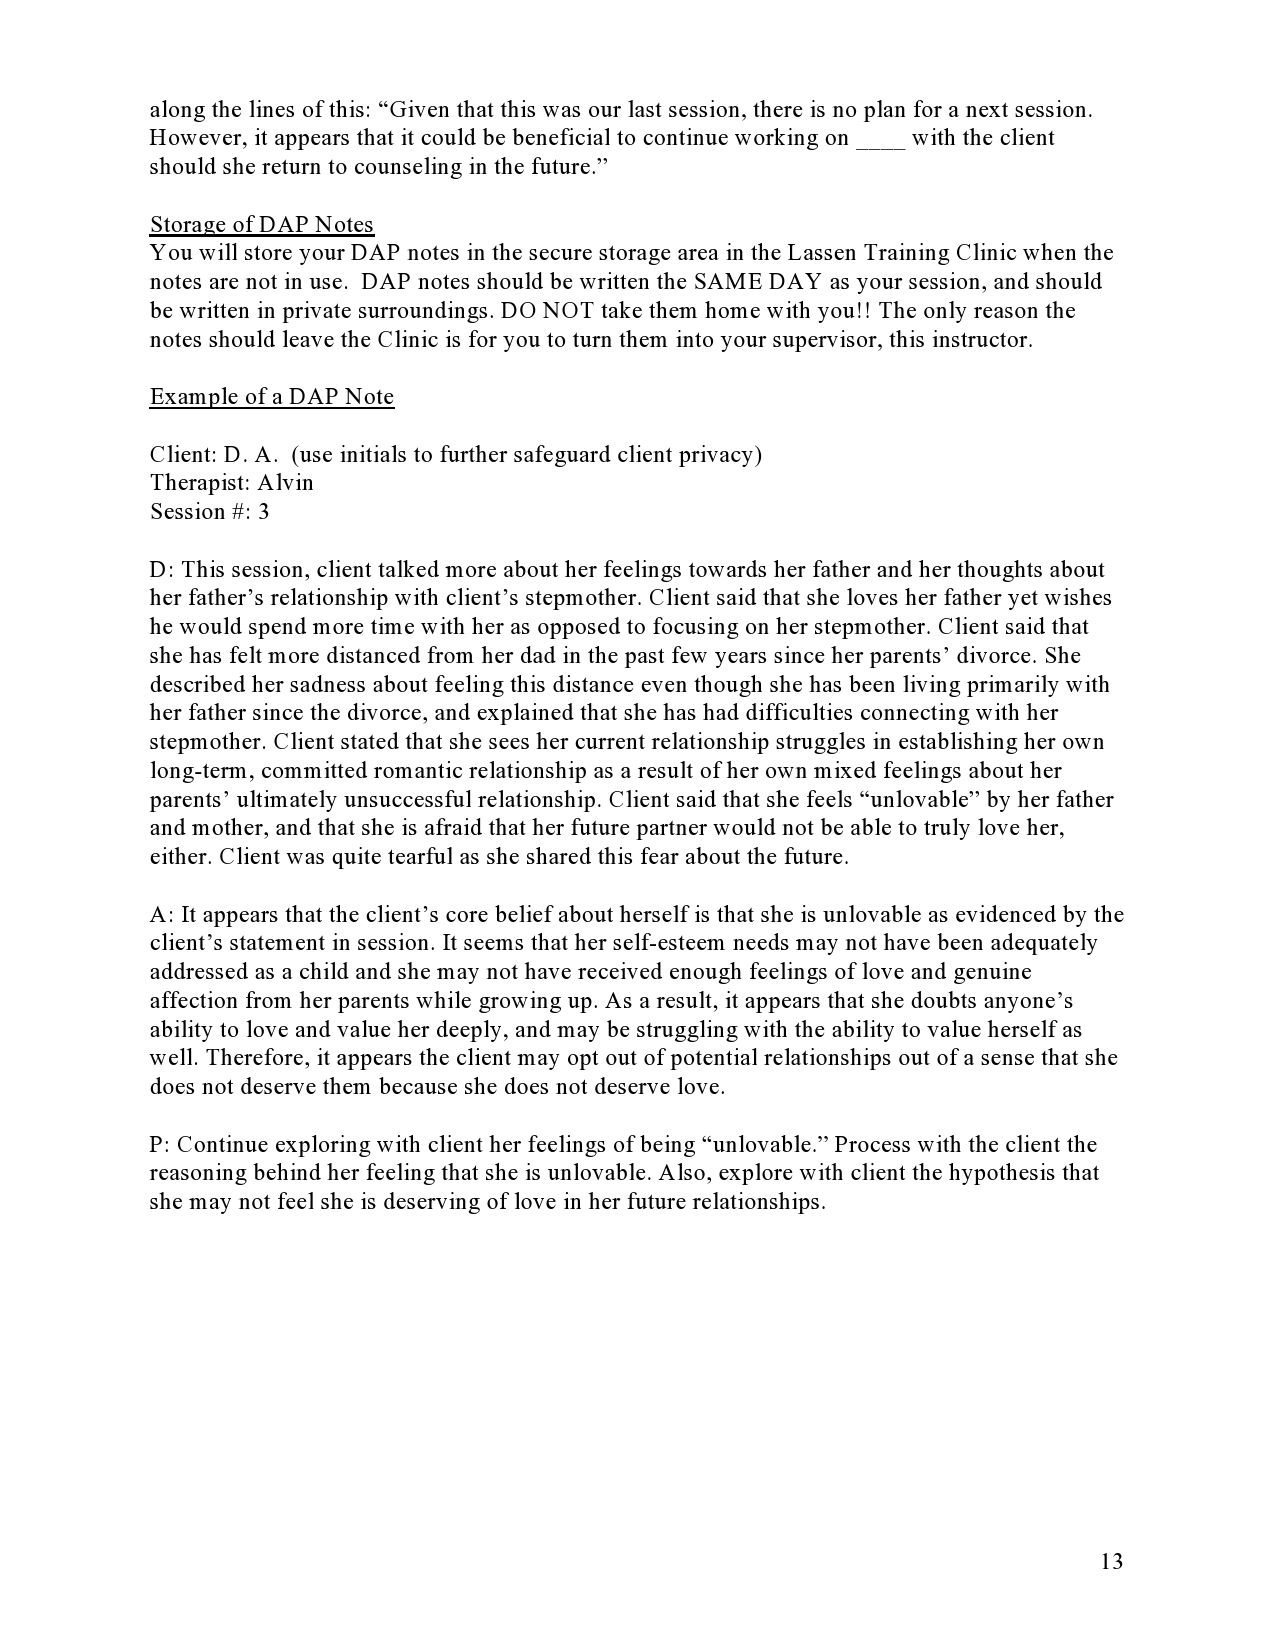 004 Astounding Therapist Progres Note Example Idea  Counseling Template Psychotherapy Sample PsychologicalFull